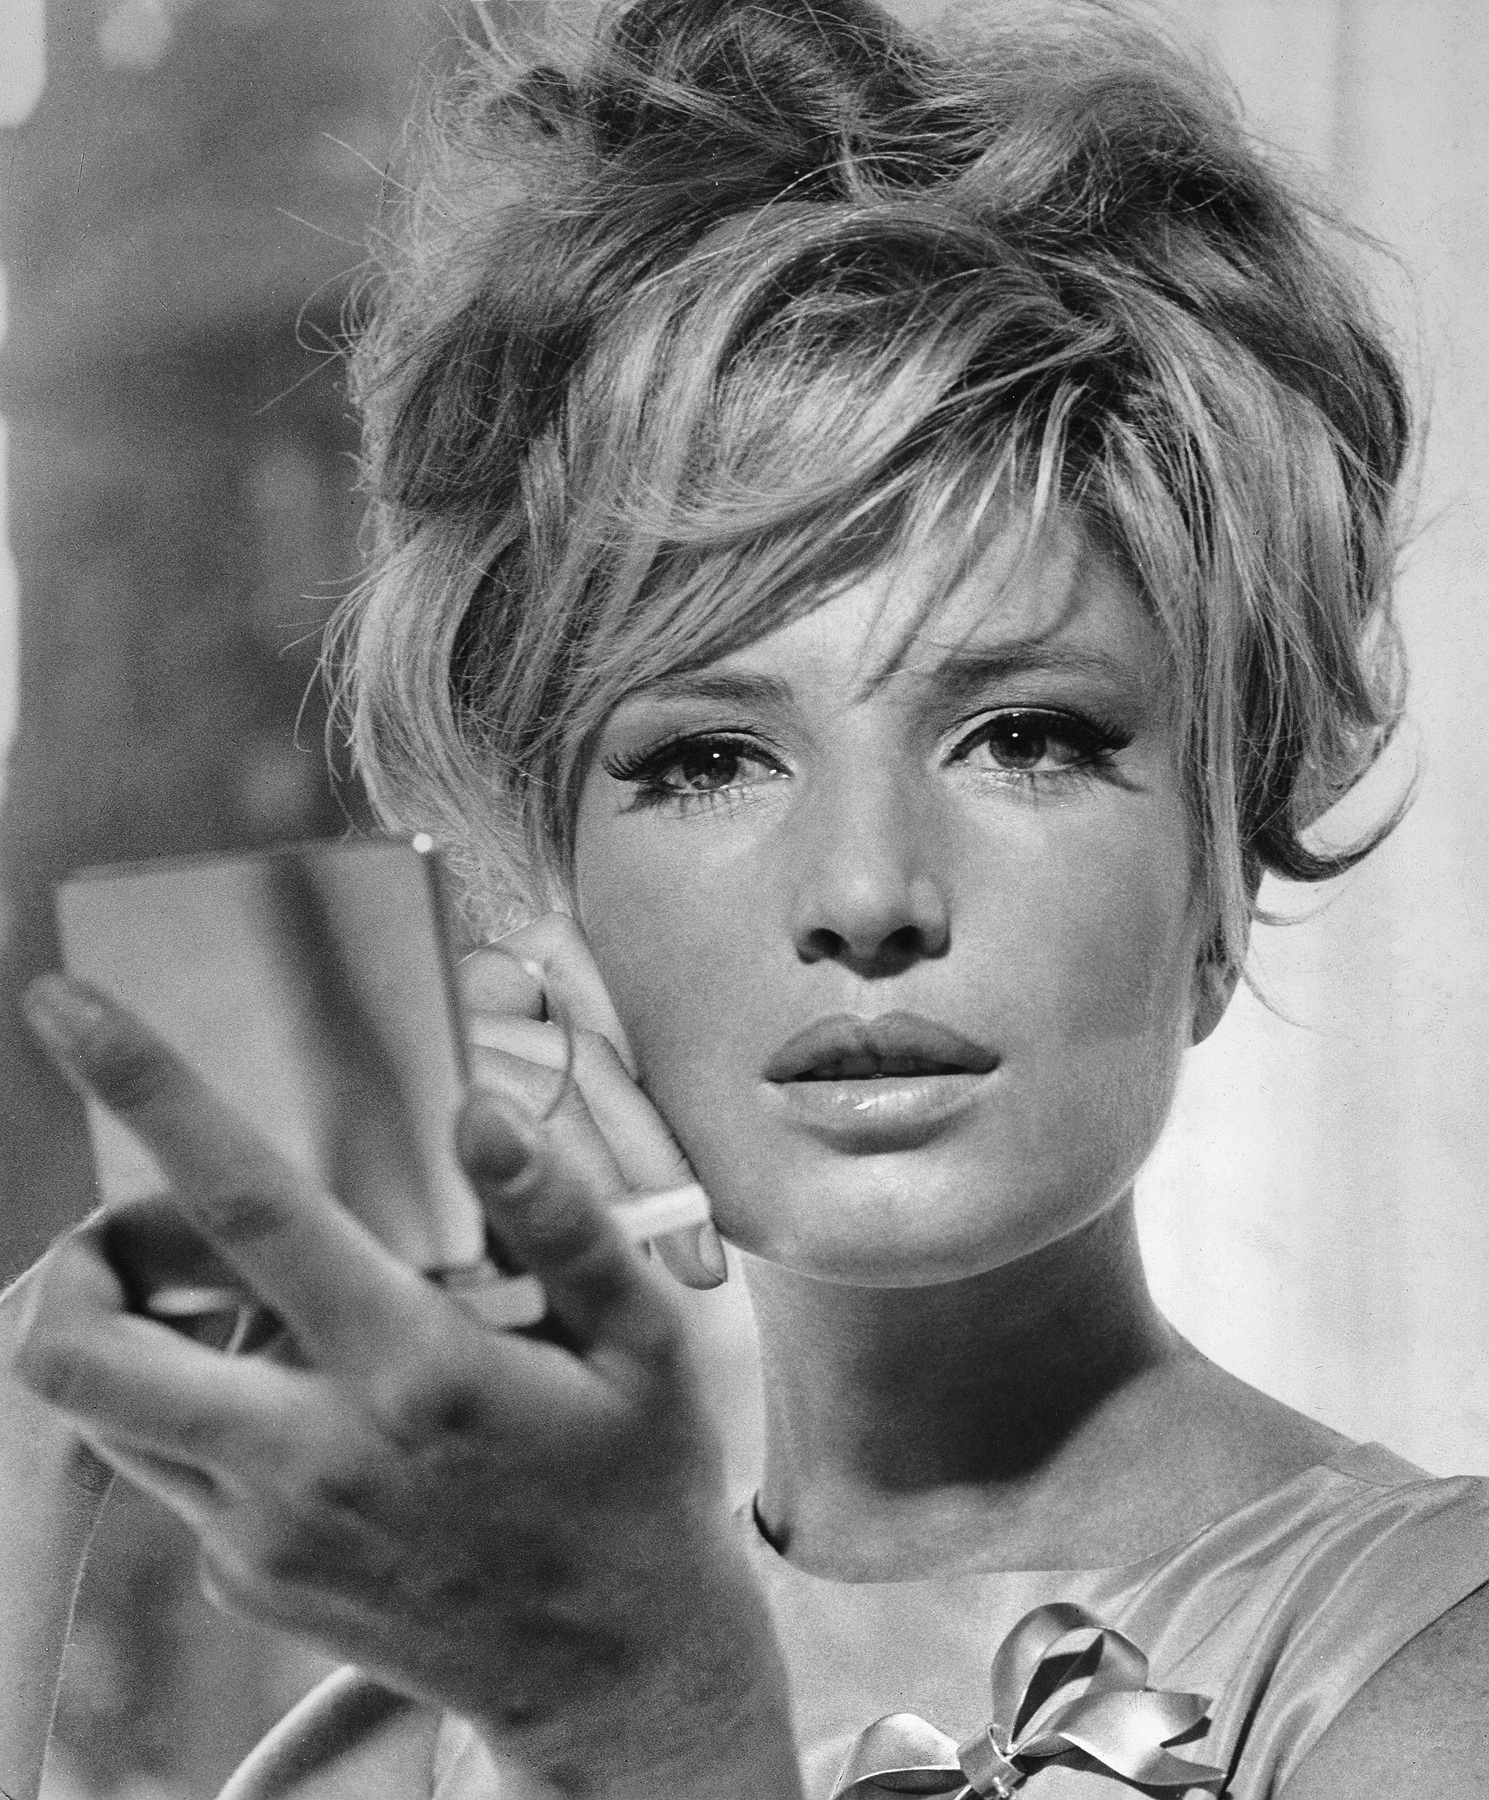 Rome, Italy (some sources list 1933), 1931-11-3, Monica Vitti